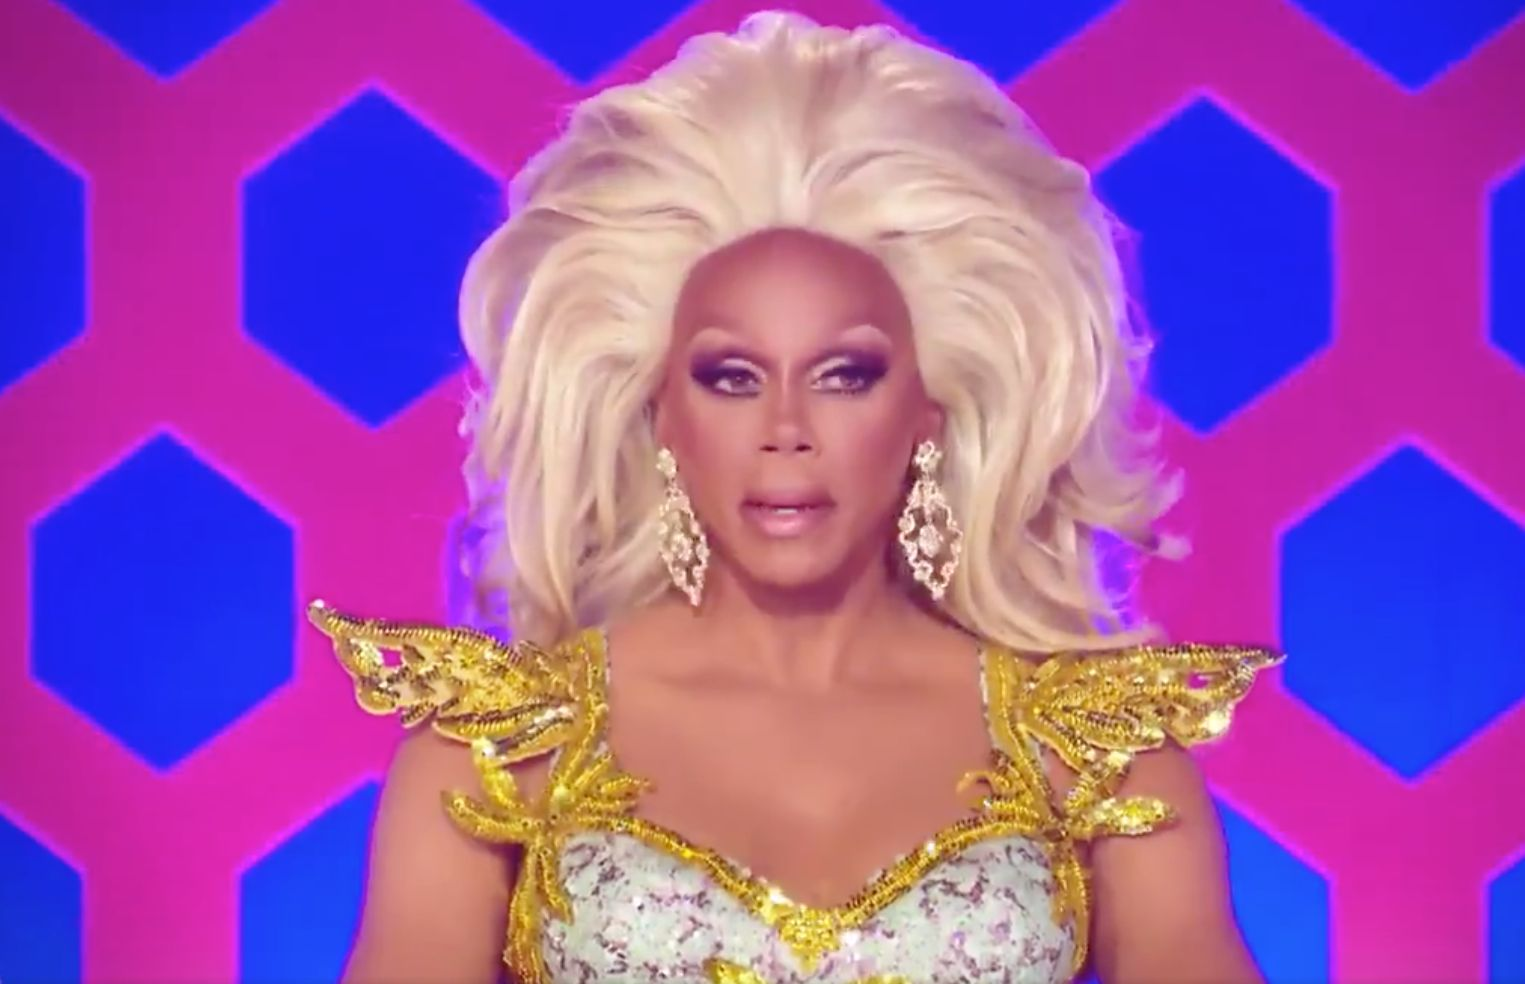 LATE NIGHT VIEWING: Here's How 'RuPaul's Drag Race' Fans Will Be Able To Watch 'All Stars 4' In The